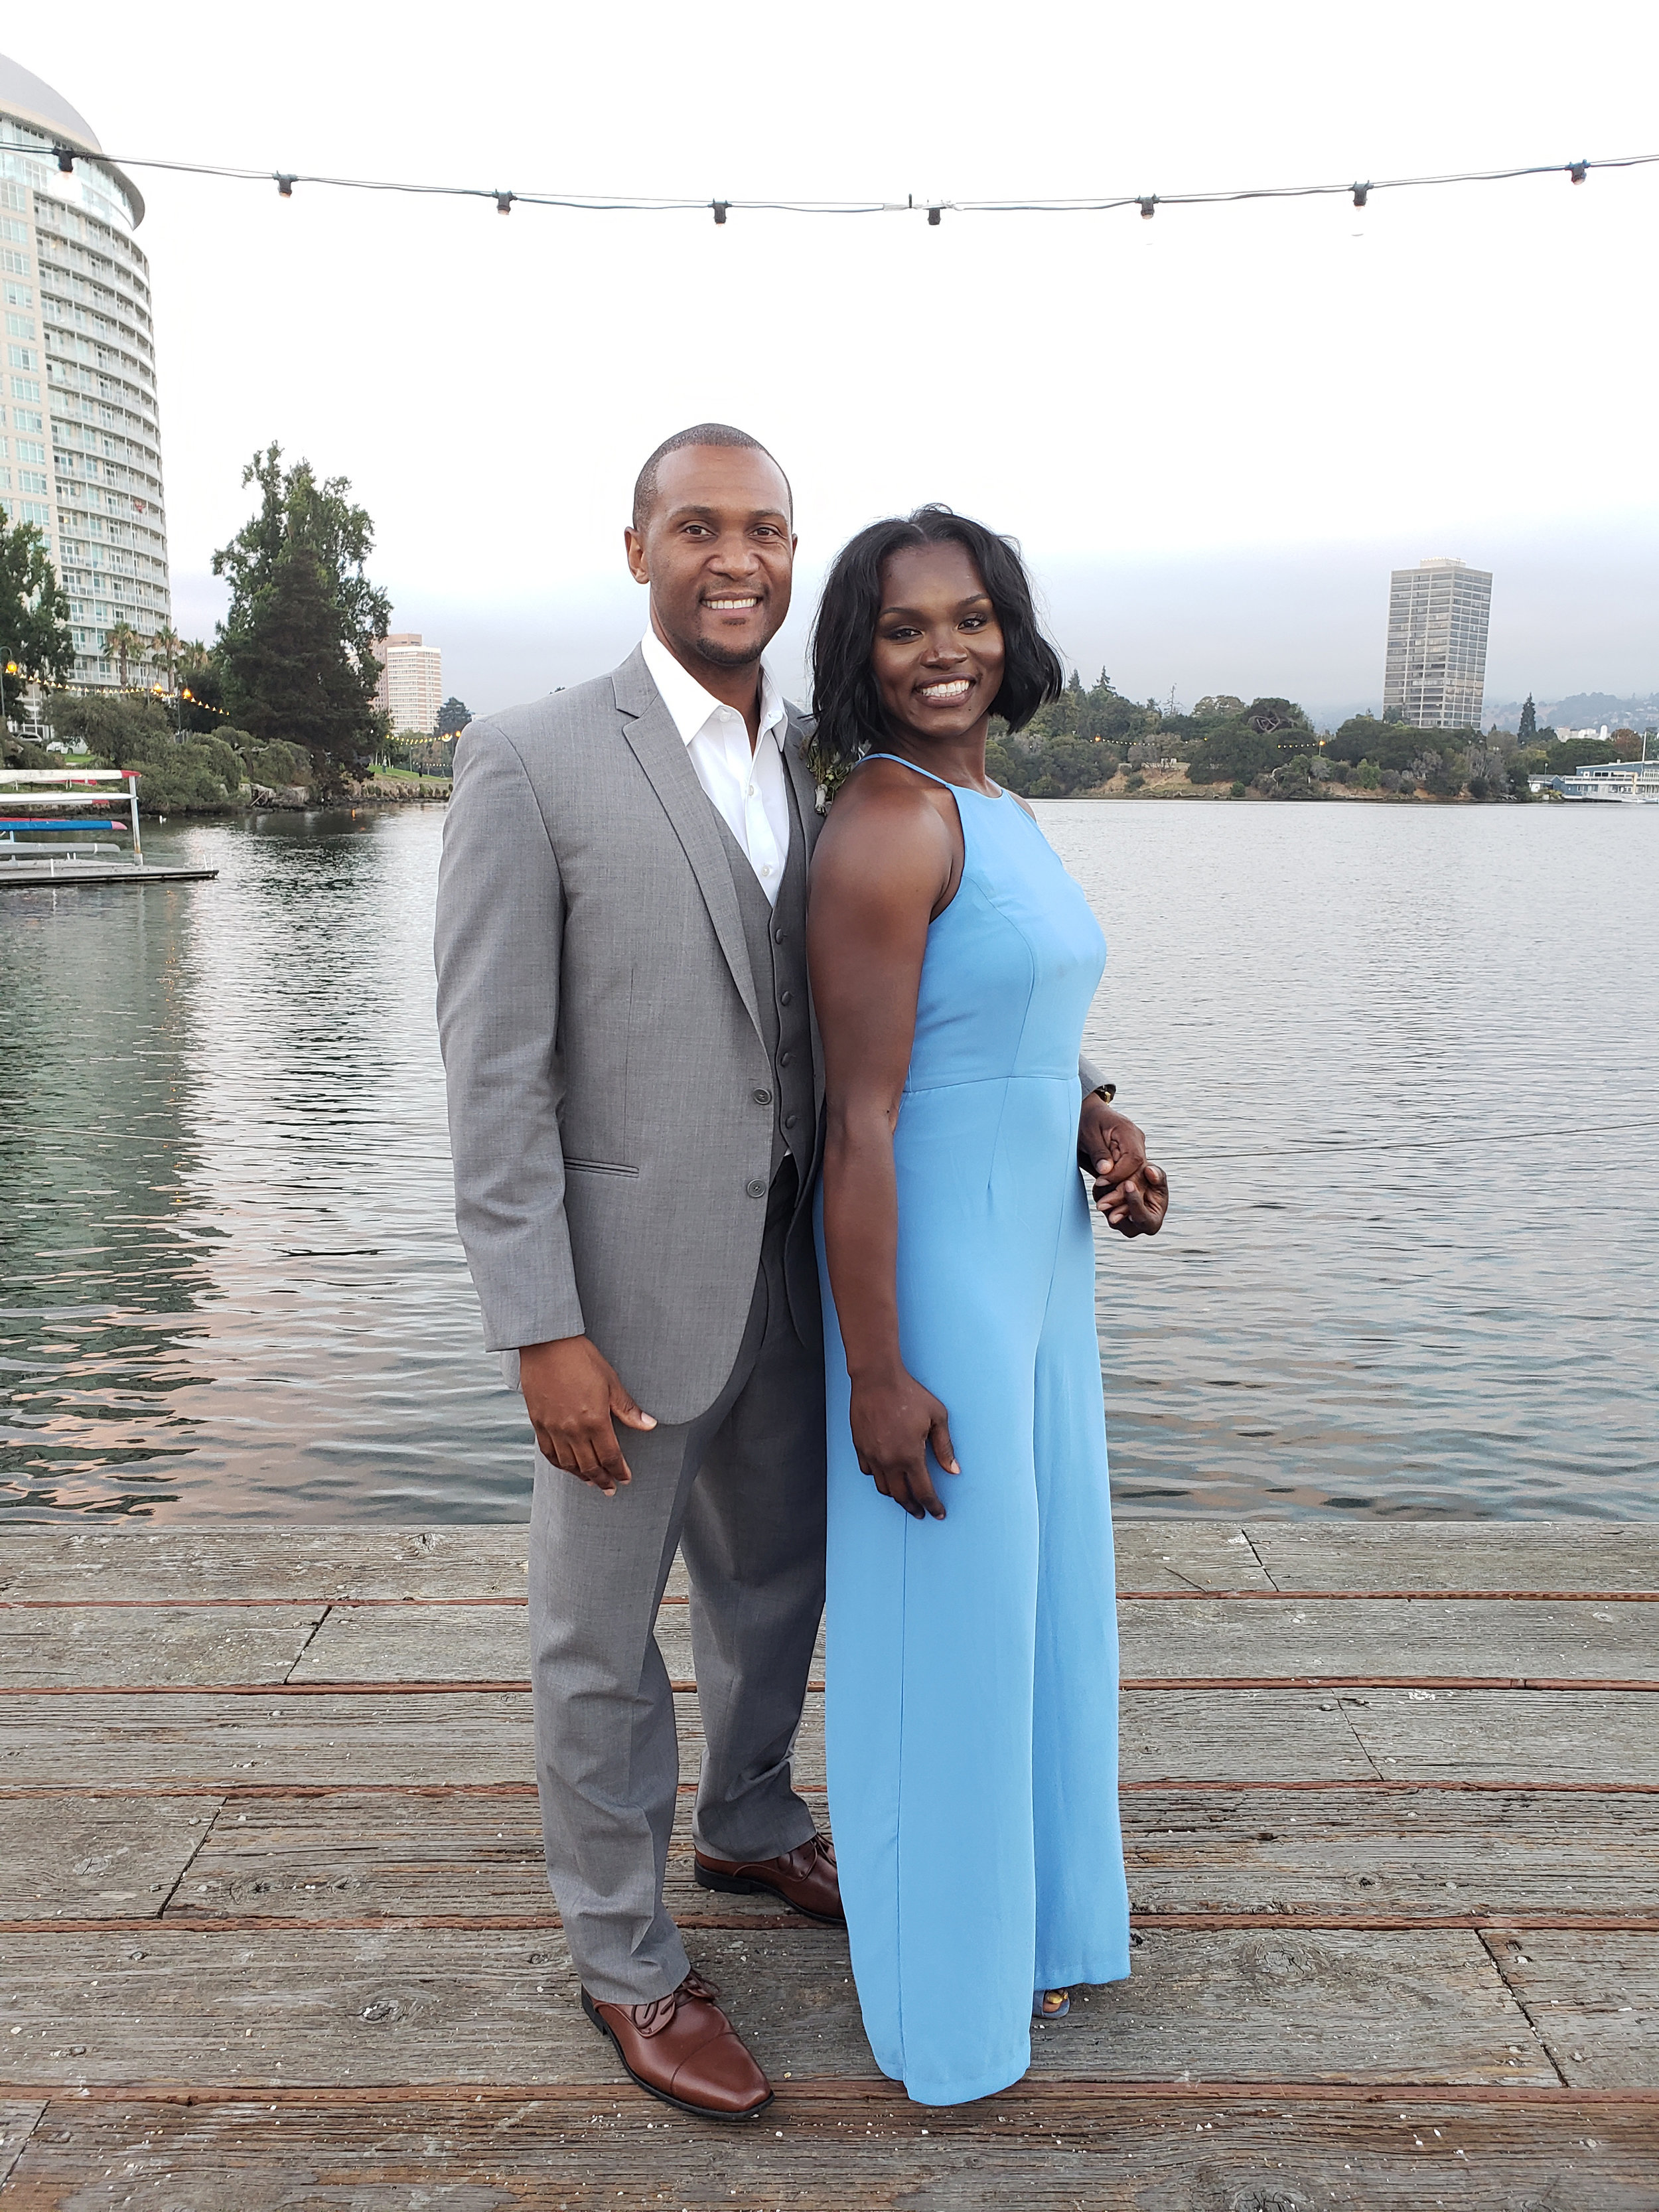 Although they live very busy lives with their three boys, Cedrick and Marie enjoyed a vacation trip to Oakland, California, to attend a friend's wedding this past August.